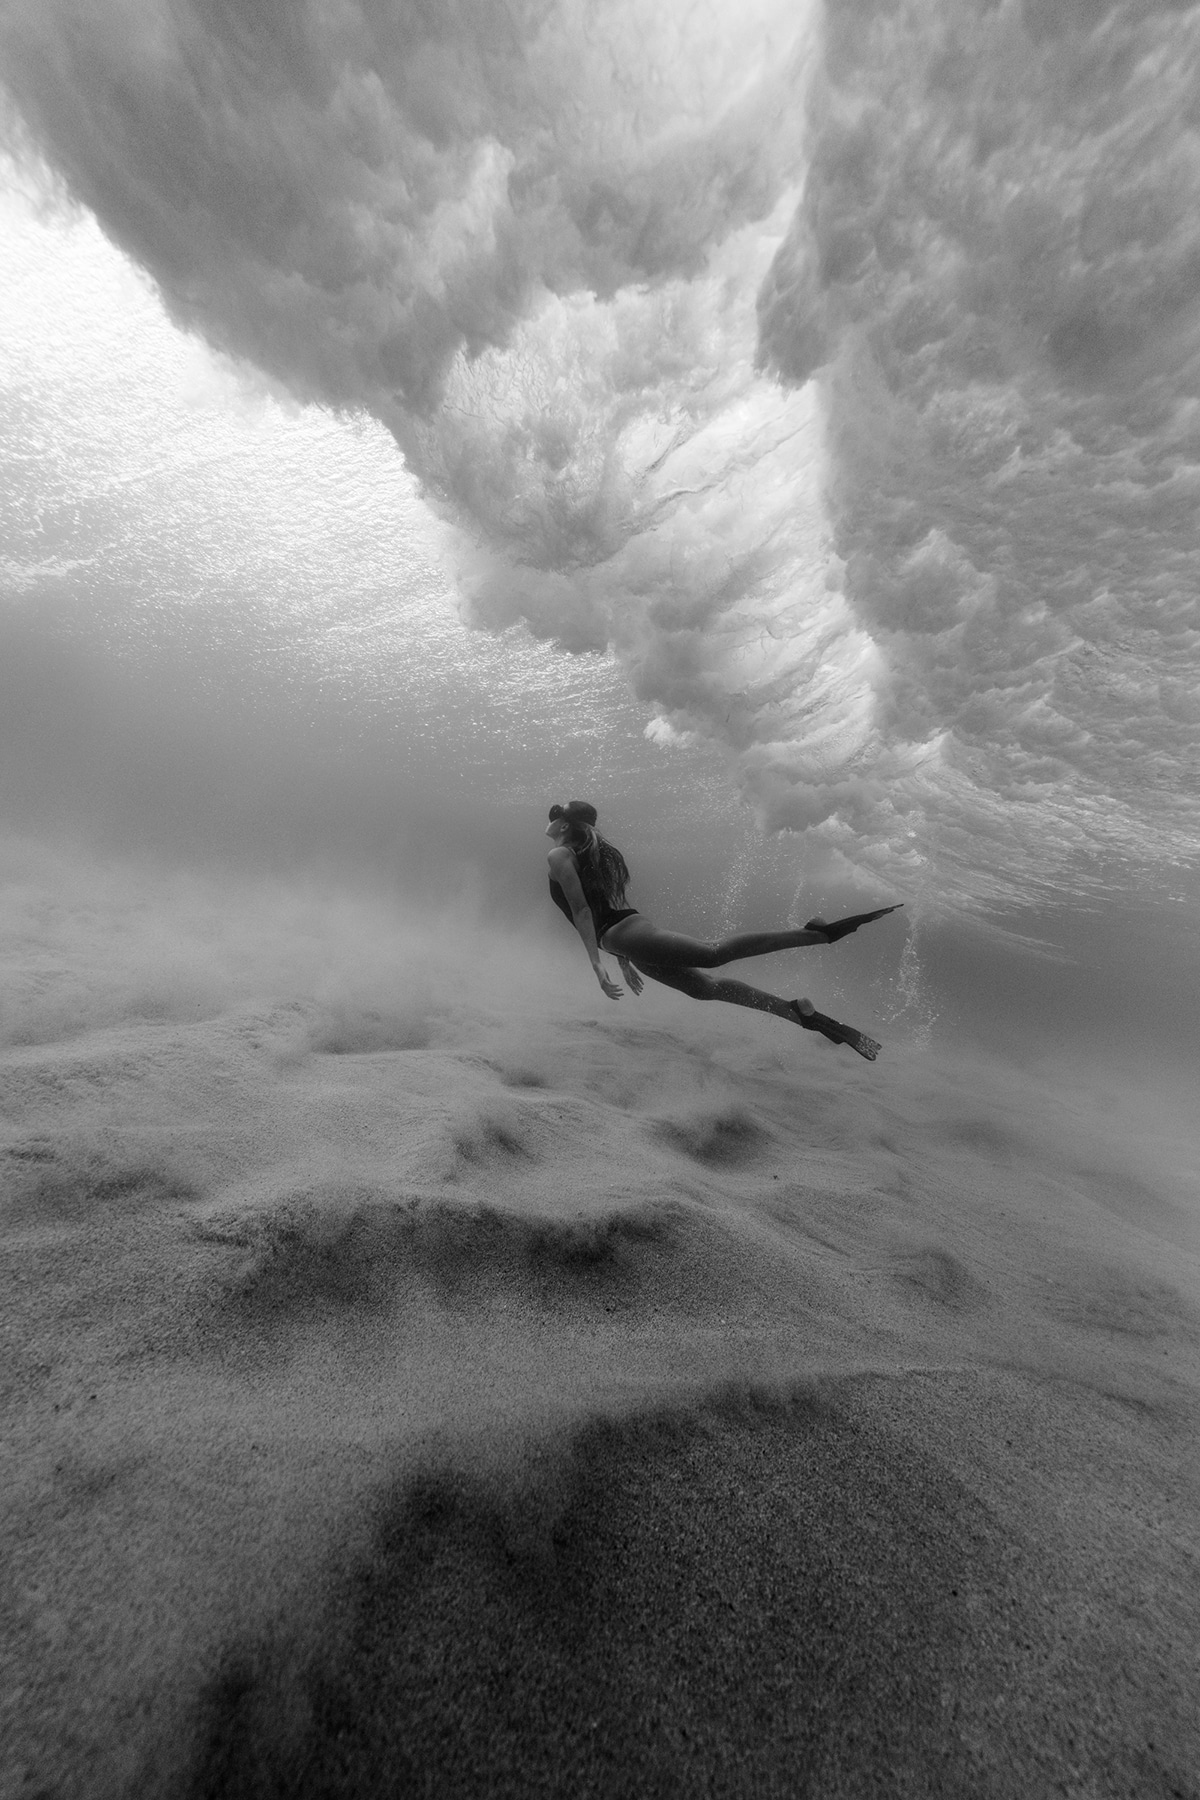 Wave Photography by Luke Shadbolt